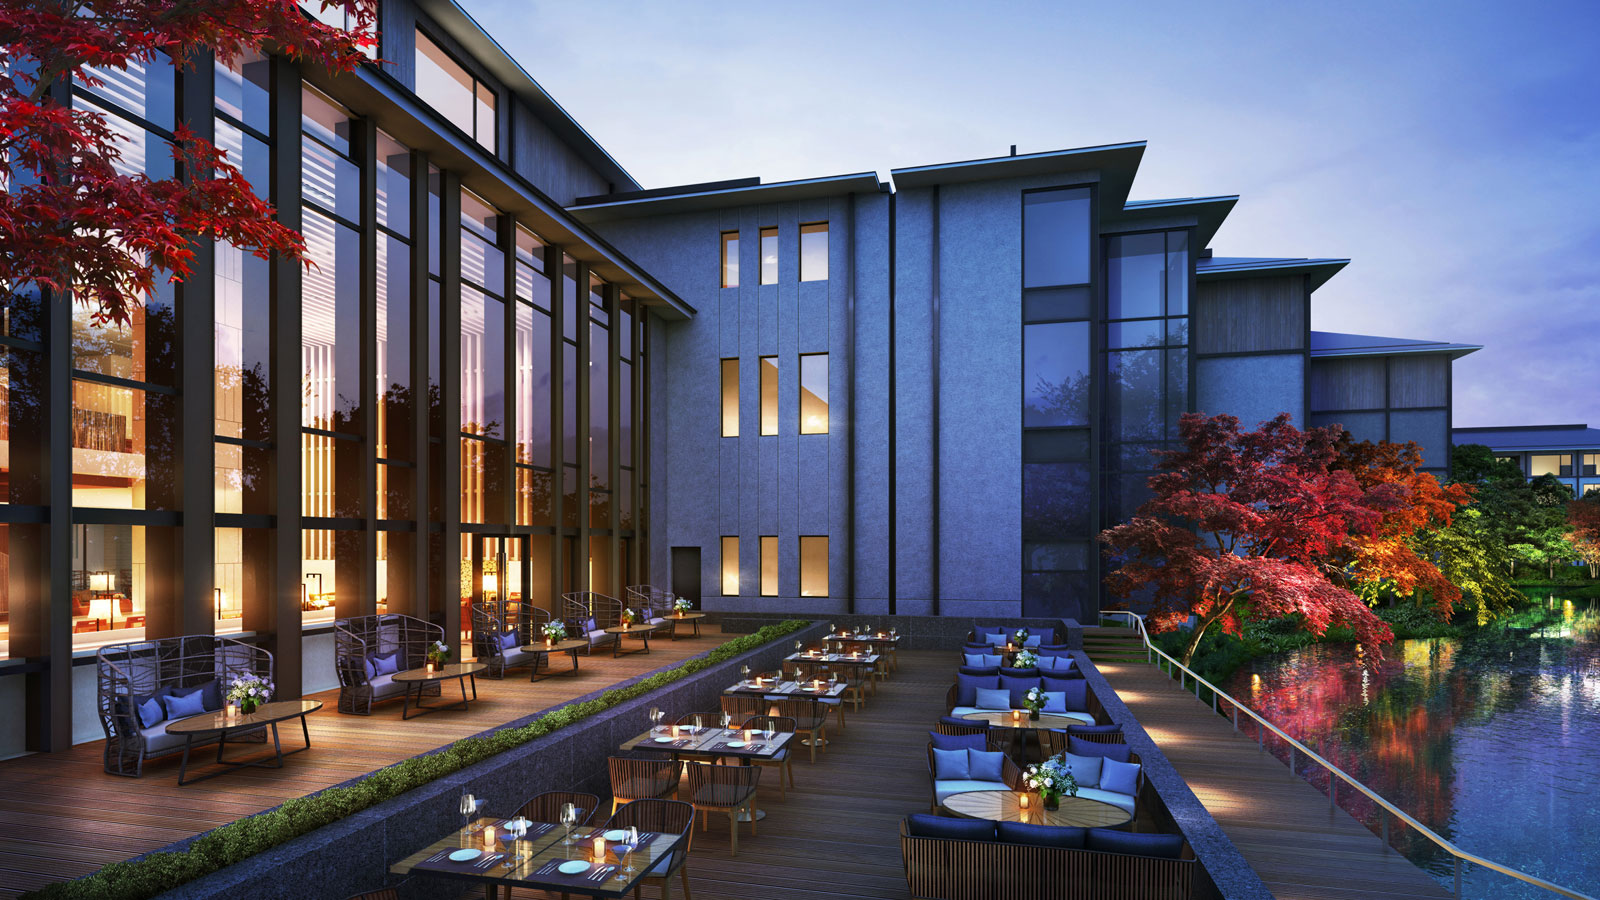 Four Seasons Hotel Kyoto Open's In Japan's Ancient Imperial Capital 12